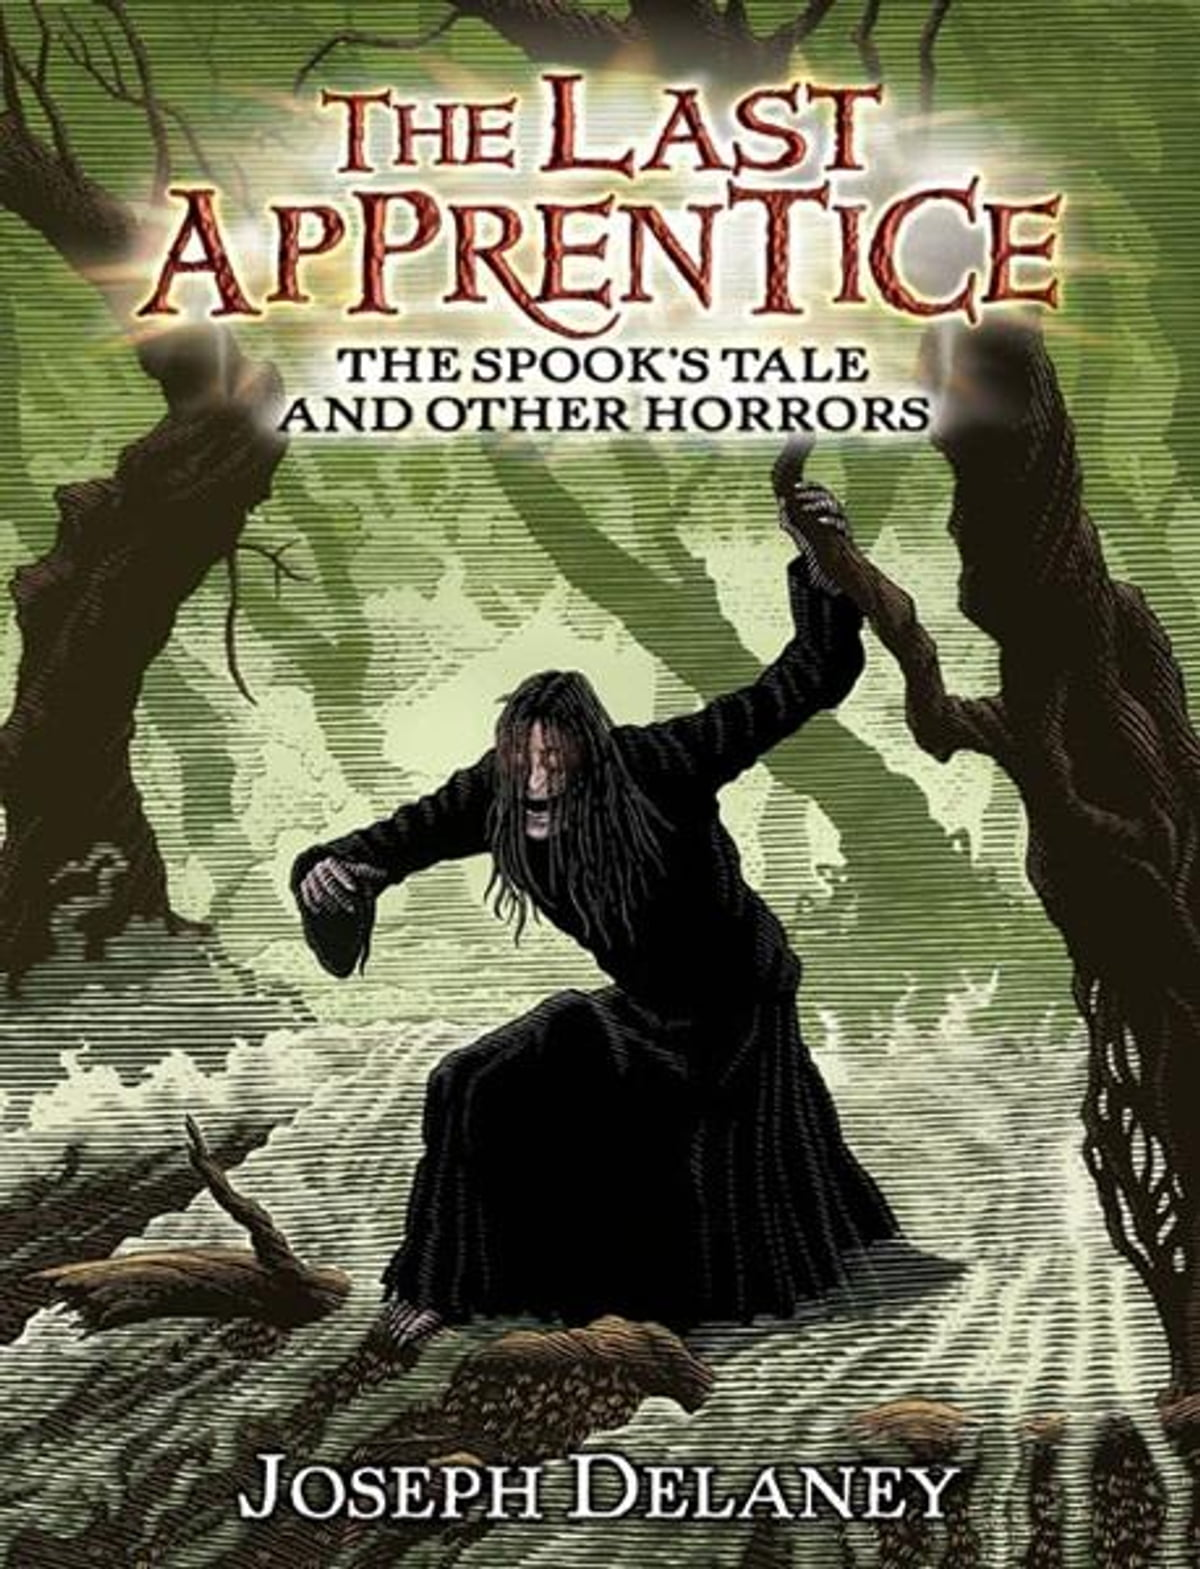 The Last Apprentice: The Spook's Tale Ebook By Joseph Delaney   9780062120977  Rakuten Kobo